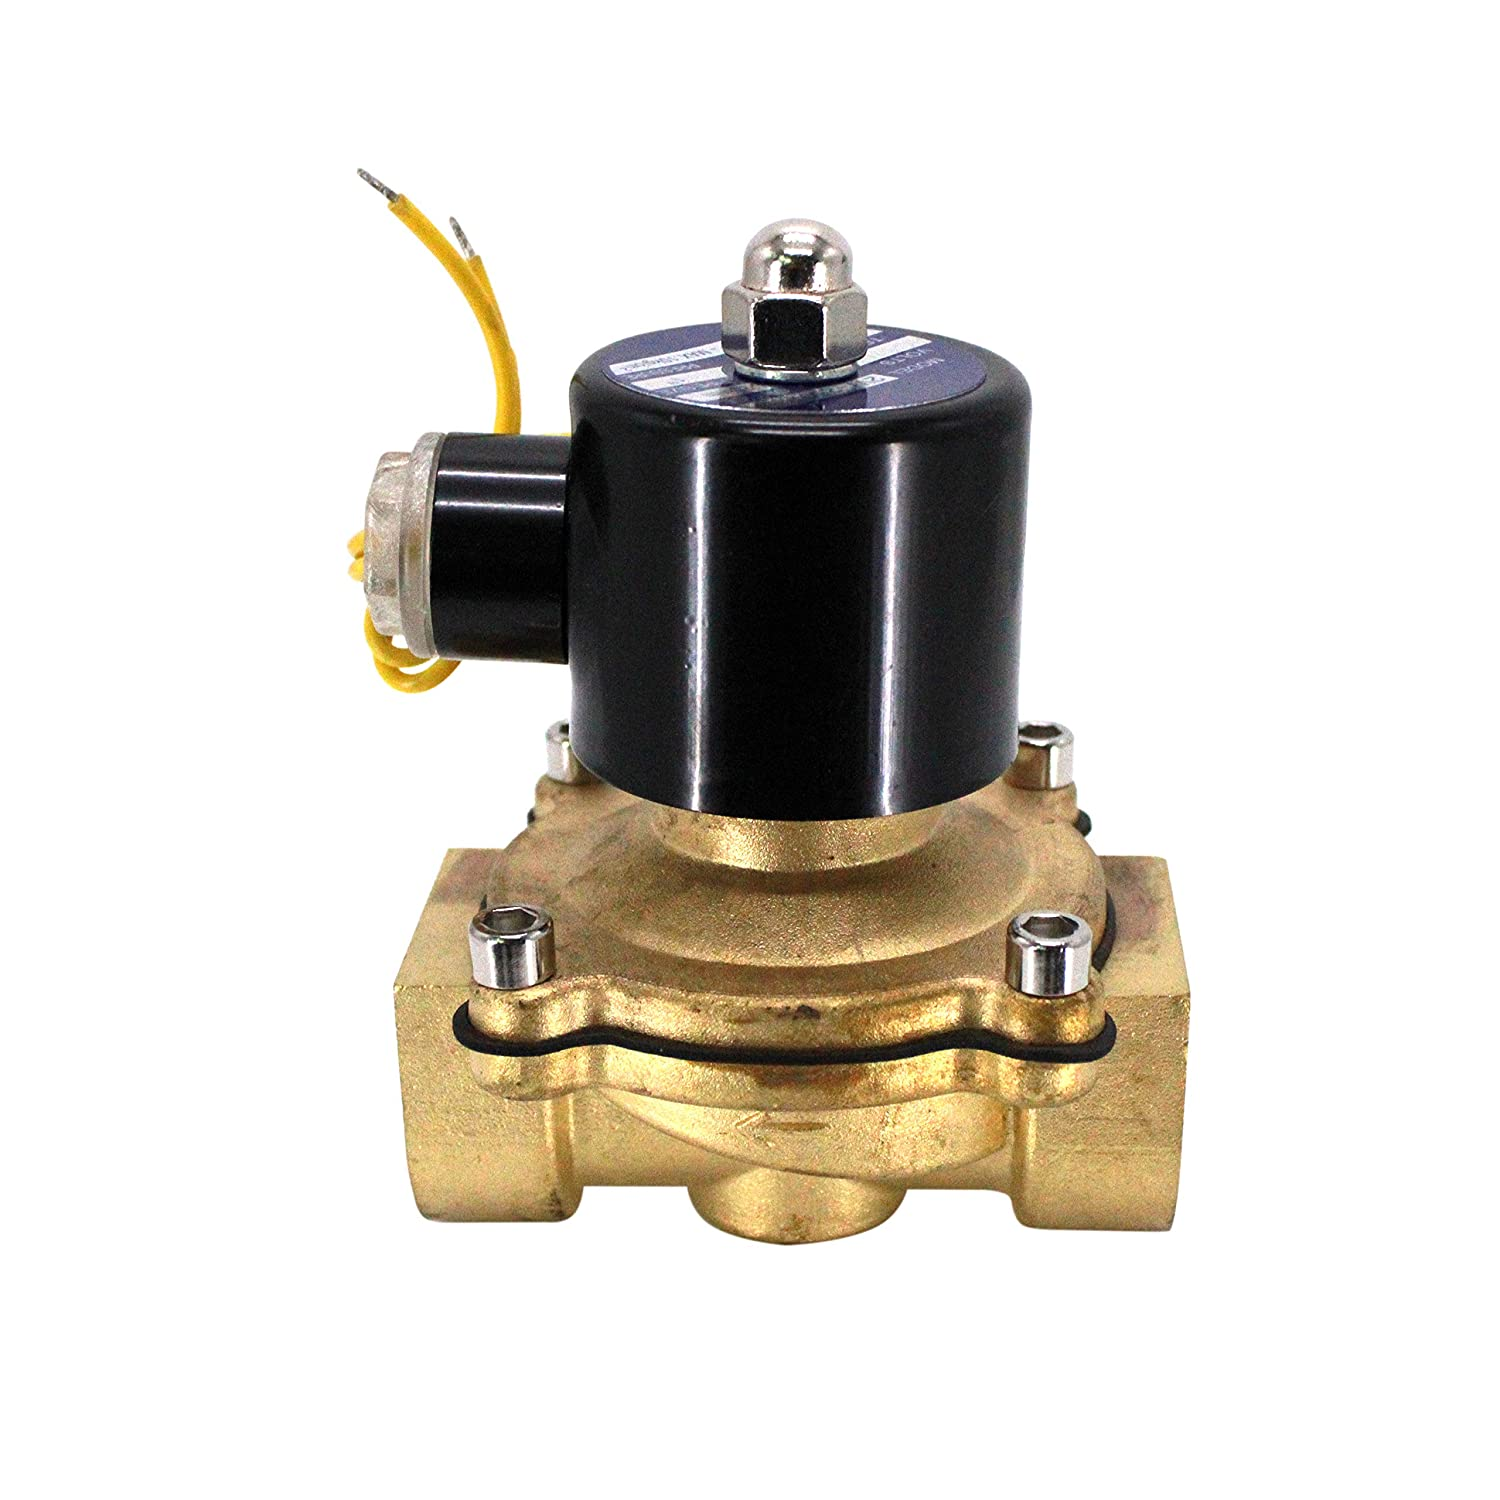 BONATE 110V AC 1 NPT Electric Solenoid Valve Water Air Gas Fuels N//C-1 NPT Available